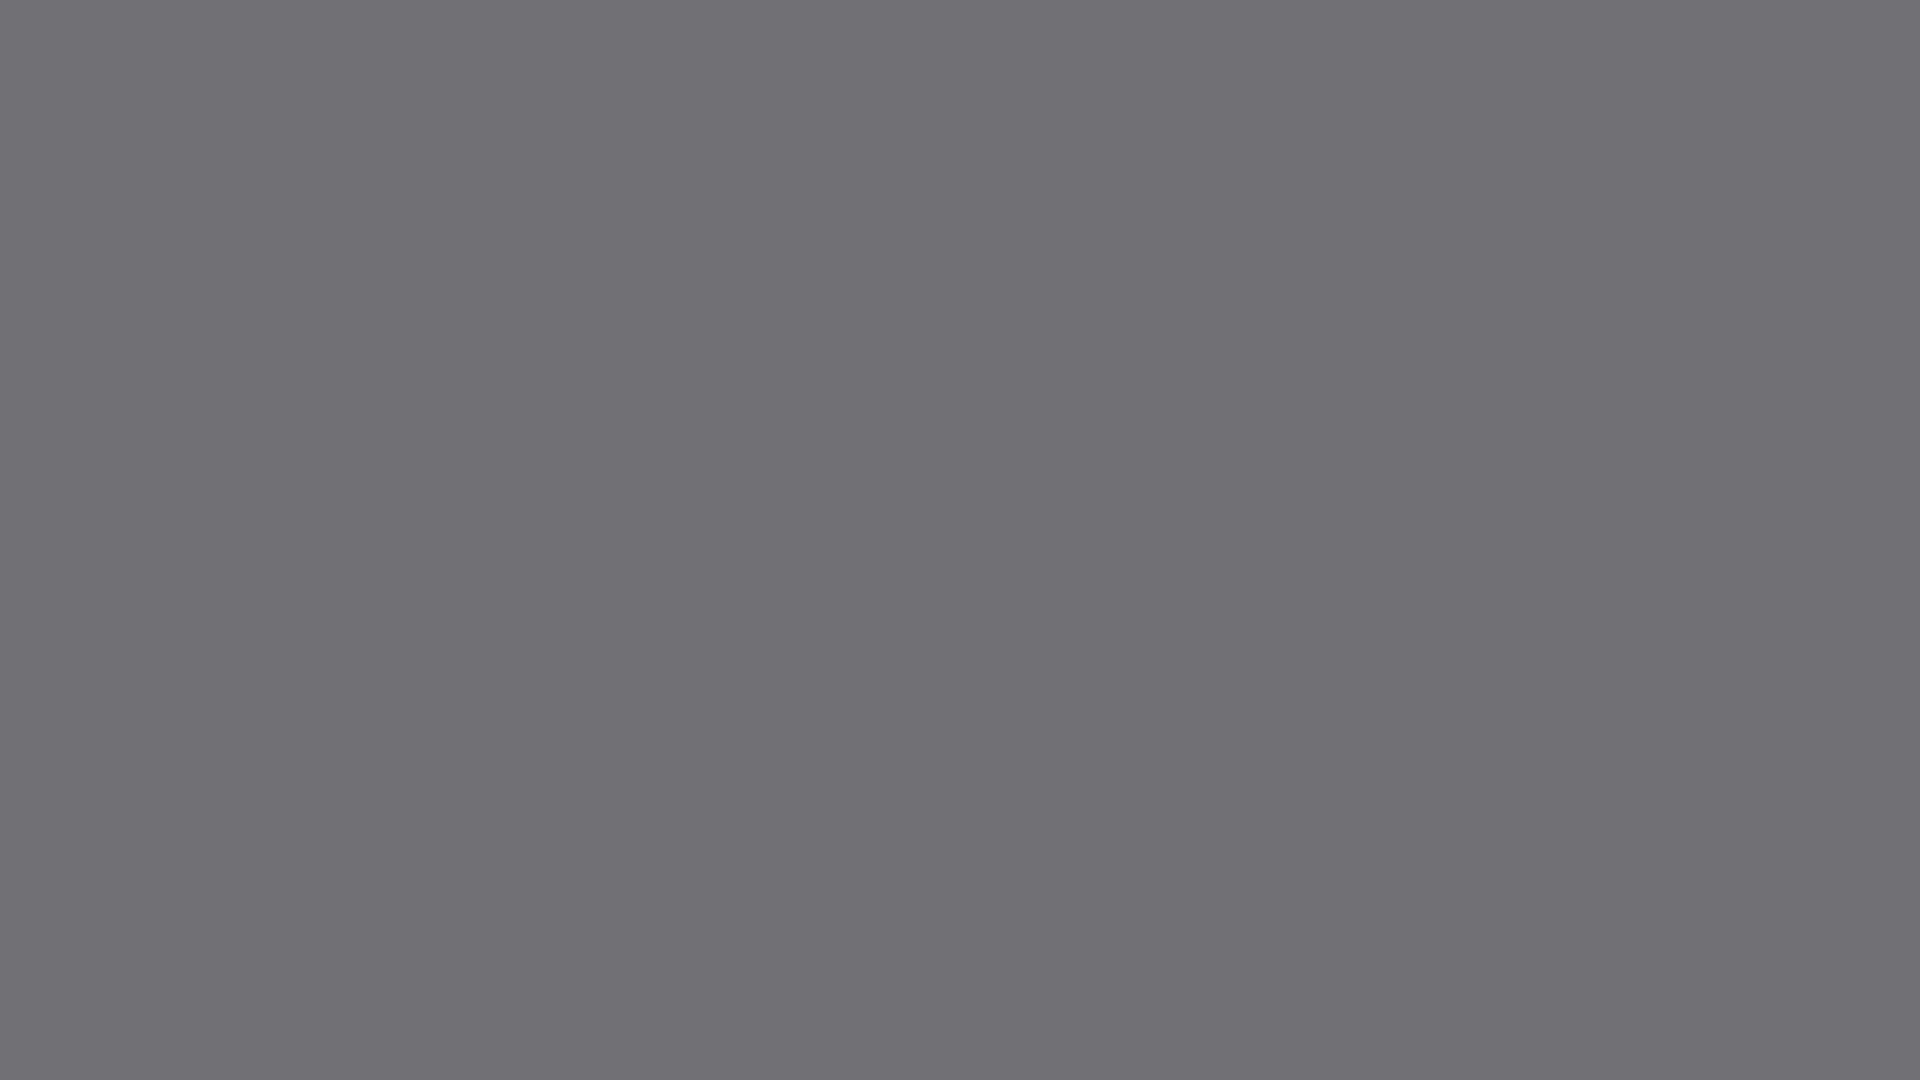 plain_vmware_gray1